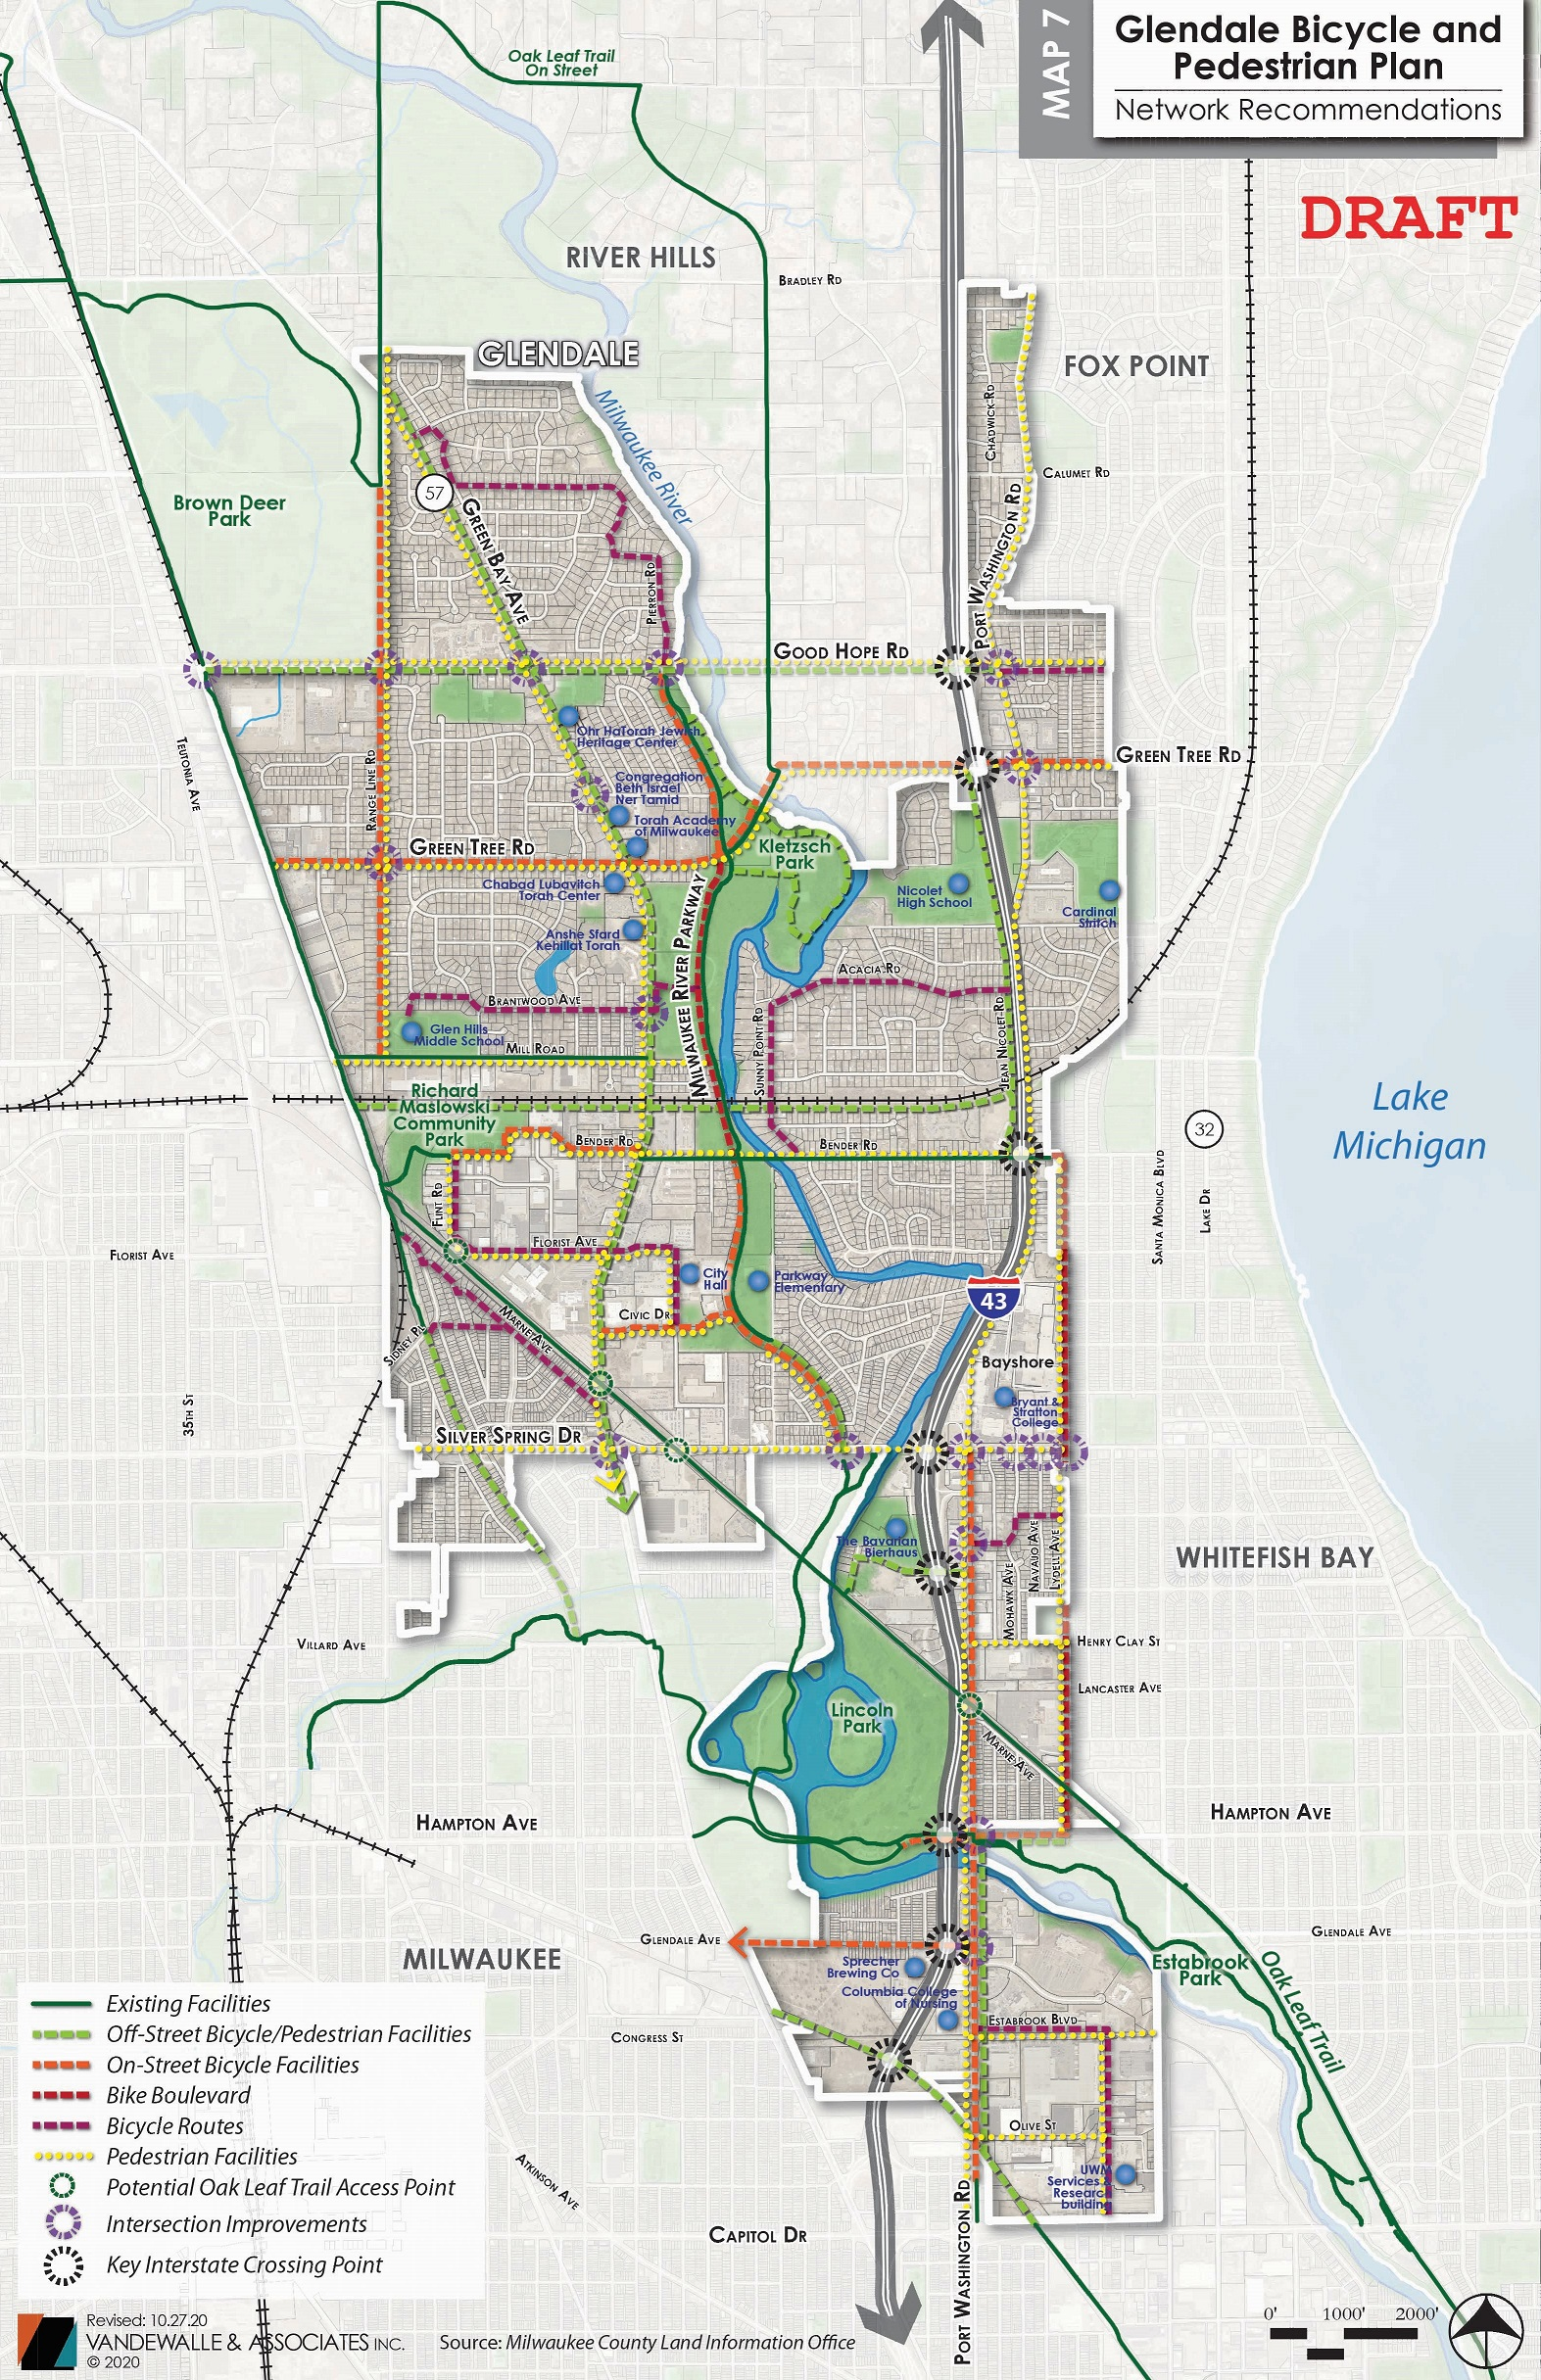 <strong>Glendale Bicycle and Pedestrian Plan - Network Recommendations Map</strong>